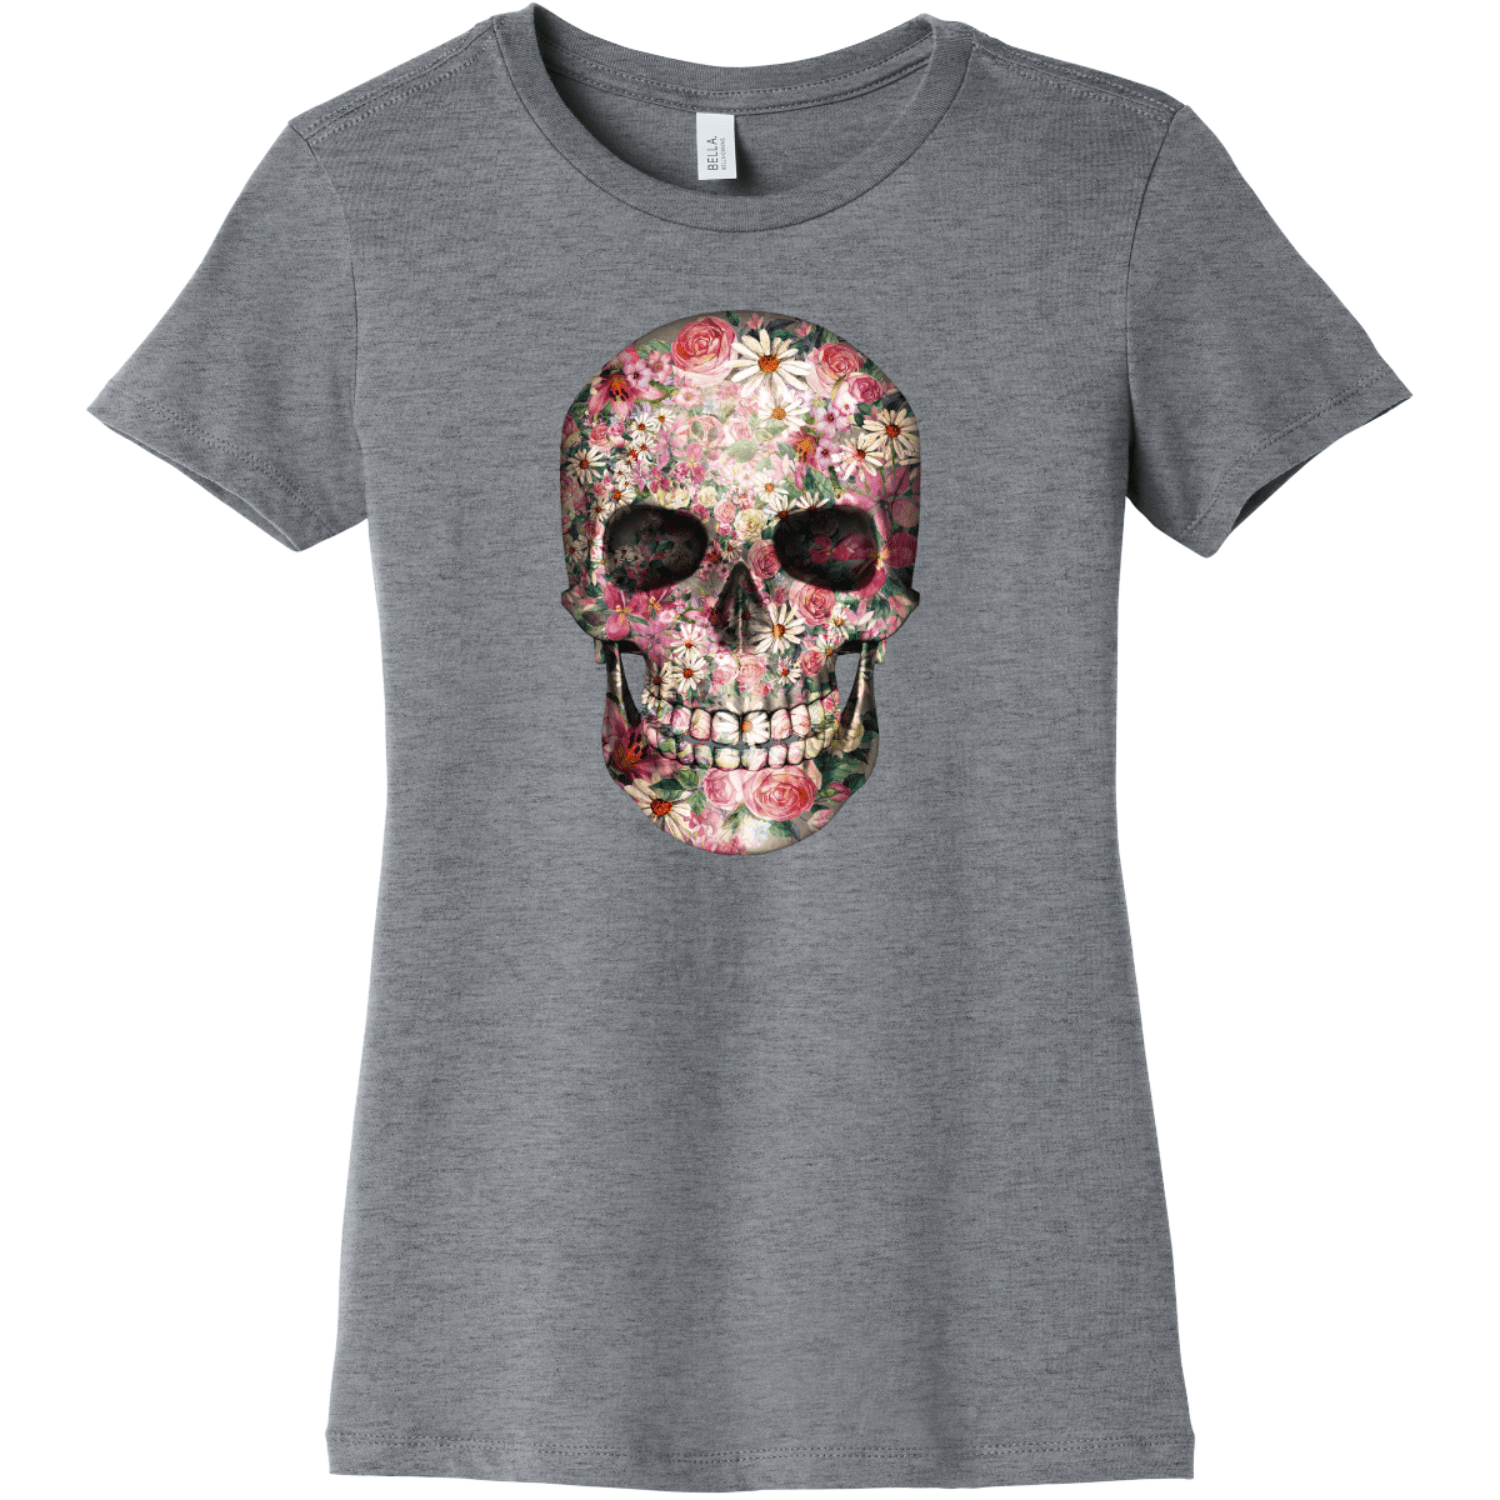 Floral Skull T Shirt For Women Athletic Heather Bella Canvas 6004 Ladies The Favorite Tee